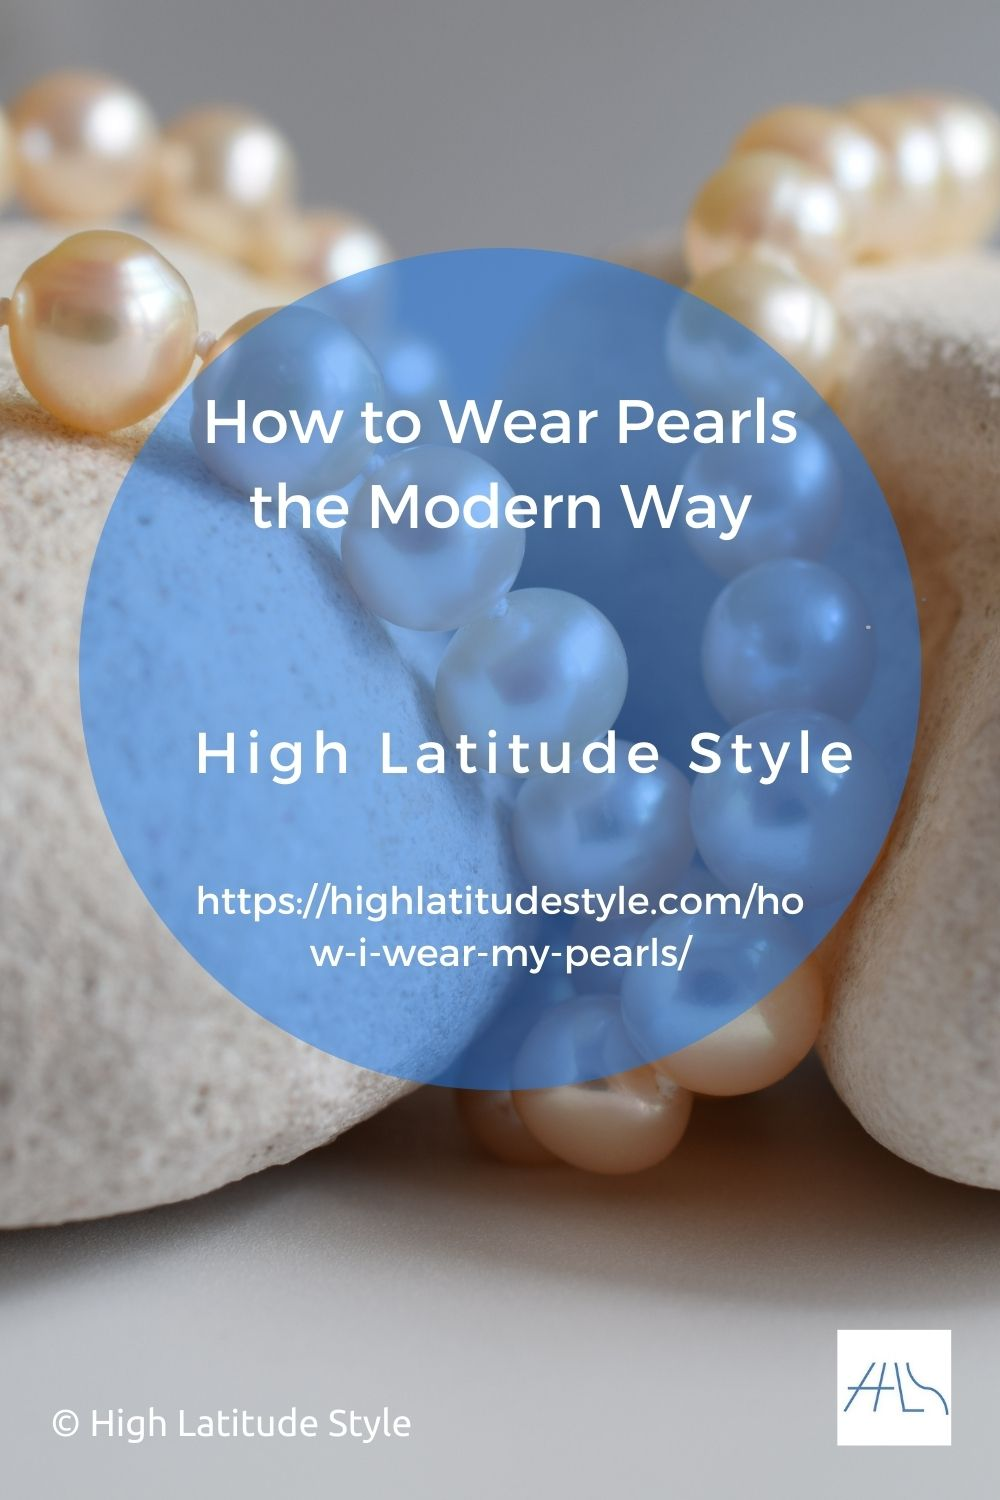 How You Can Wear Pearls the Modern Way